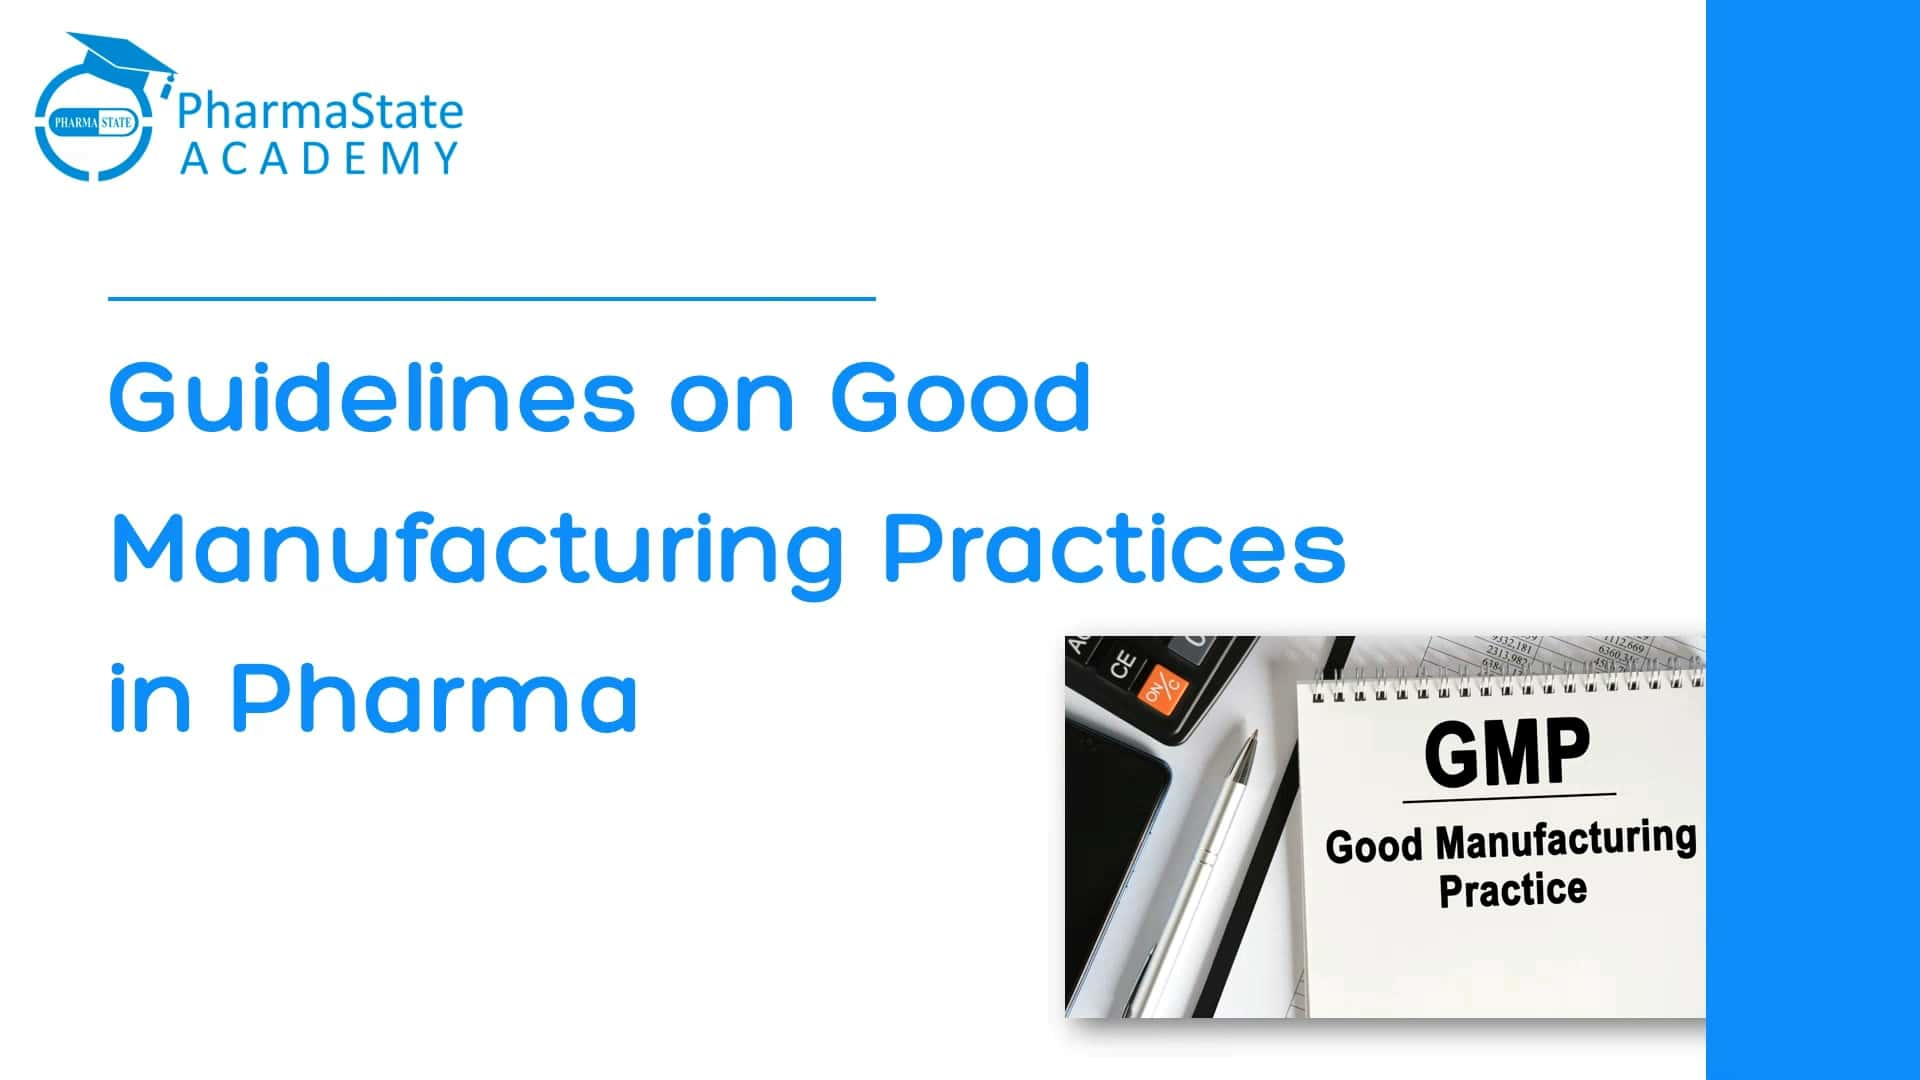 Guidelines on Good Manufacturing Practices in Pharma